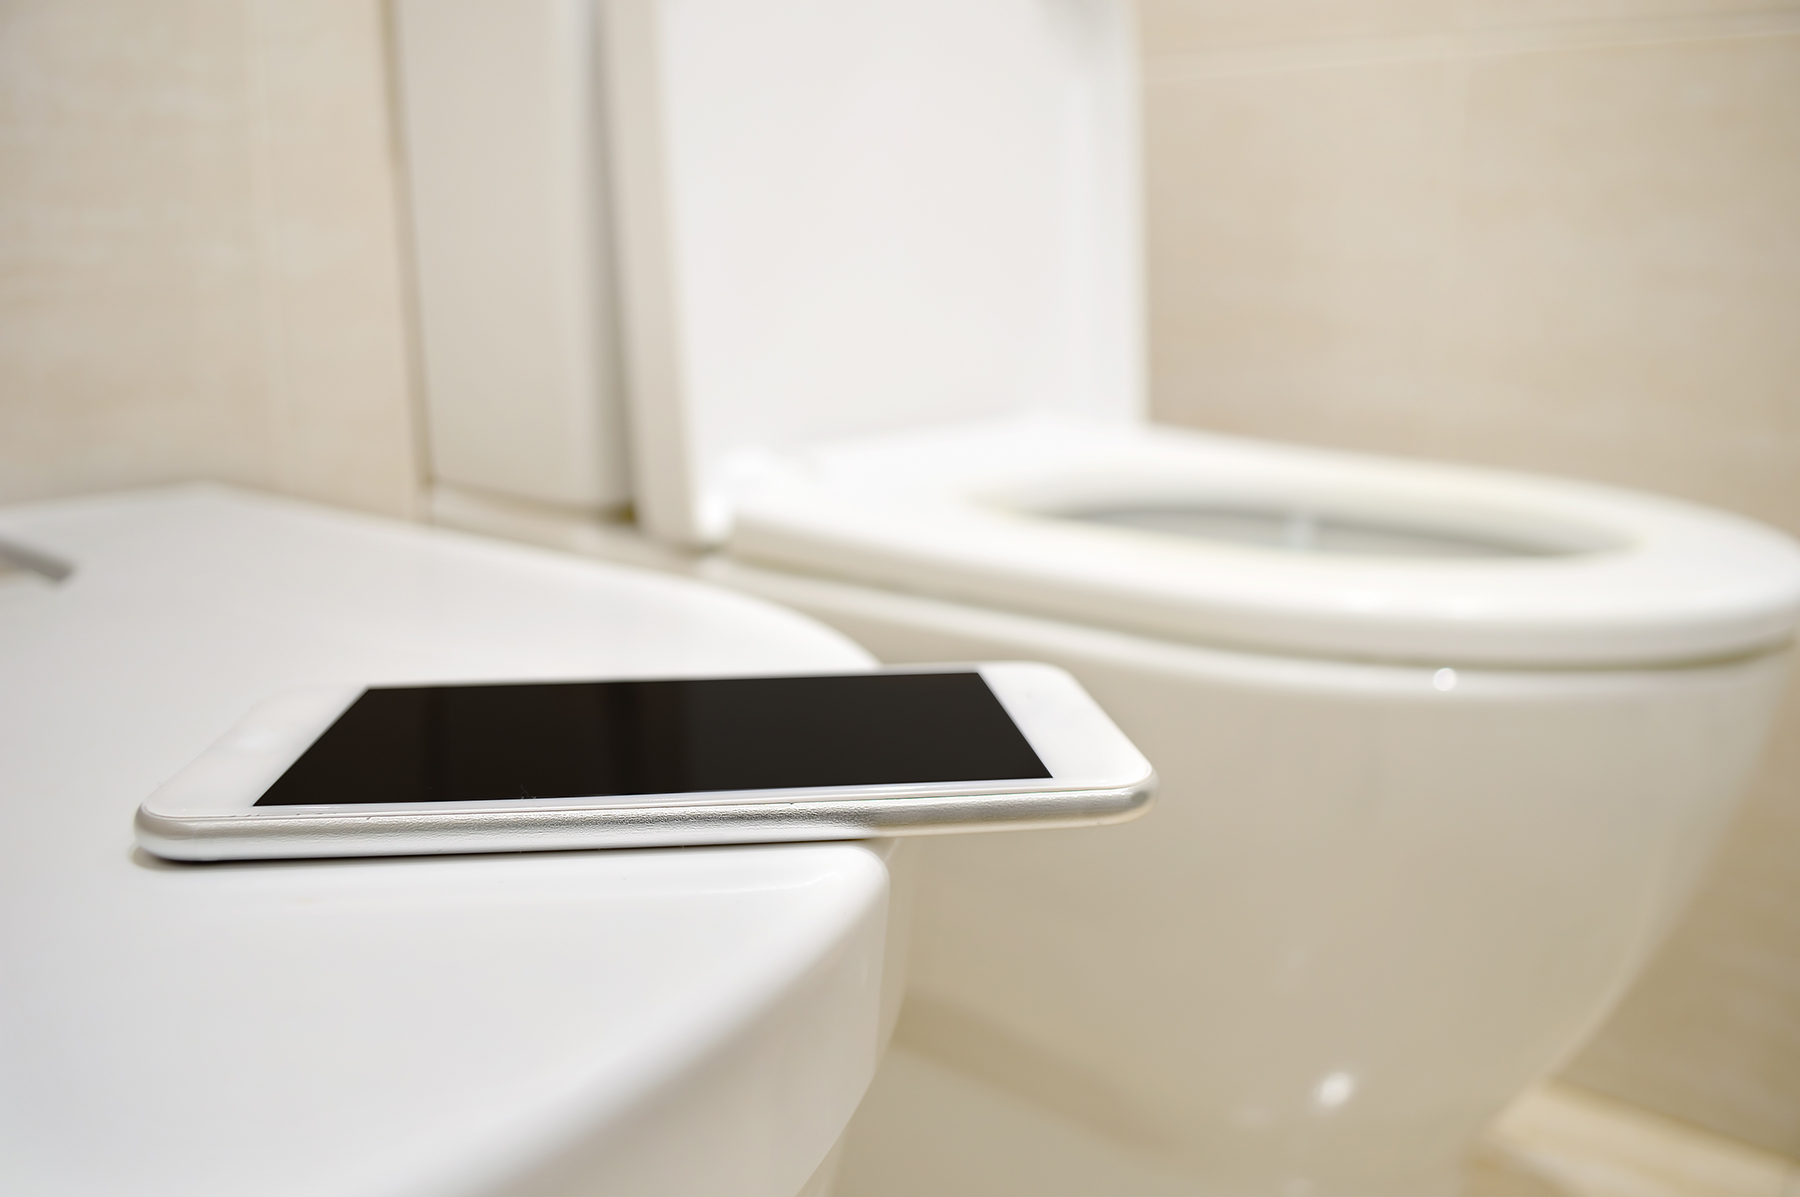 Phone in bathroom